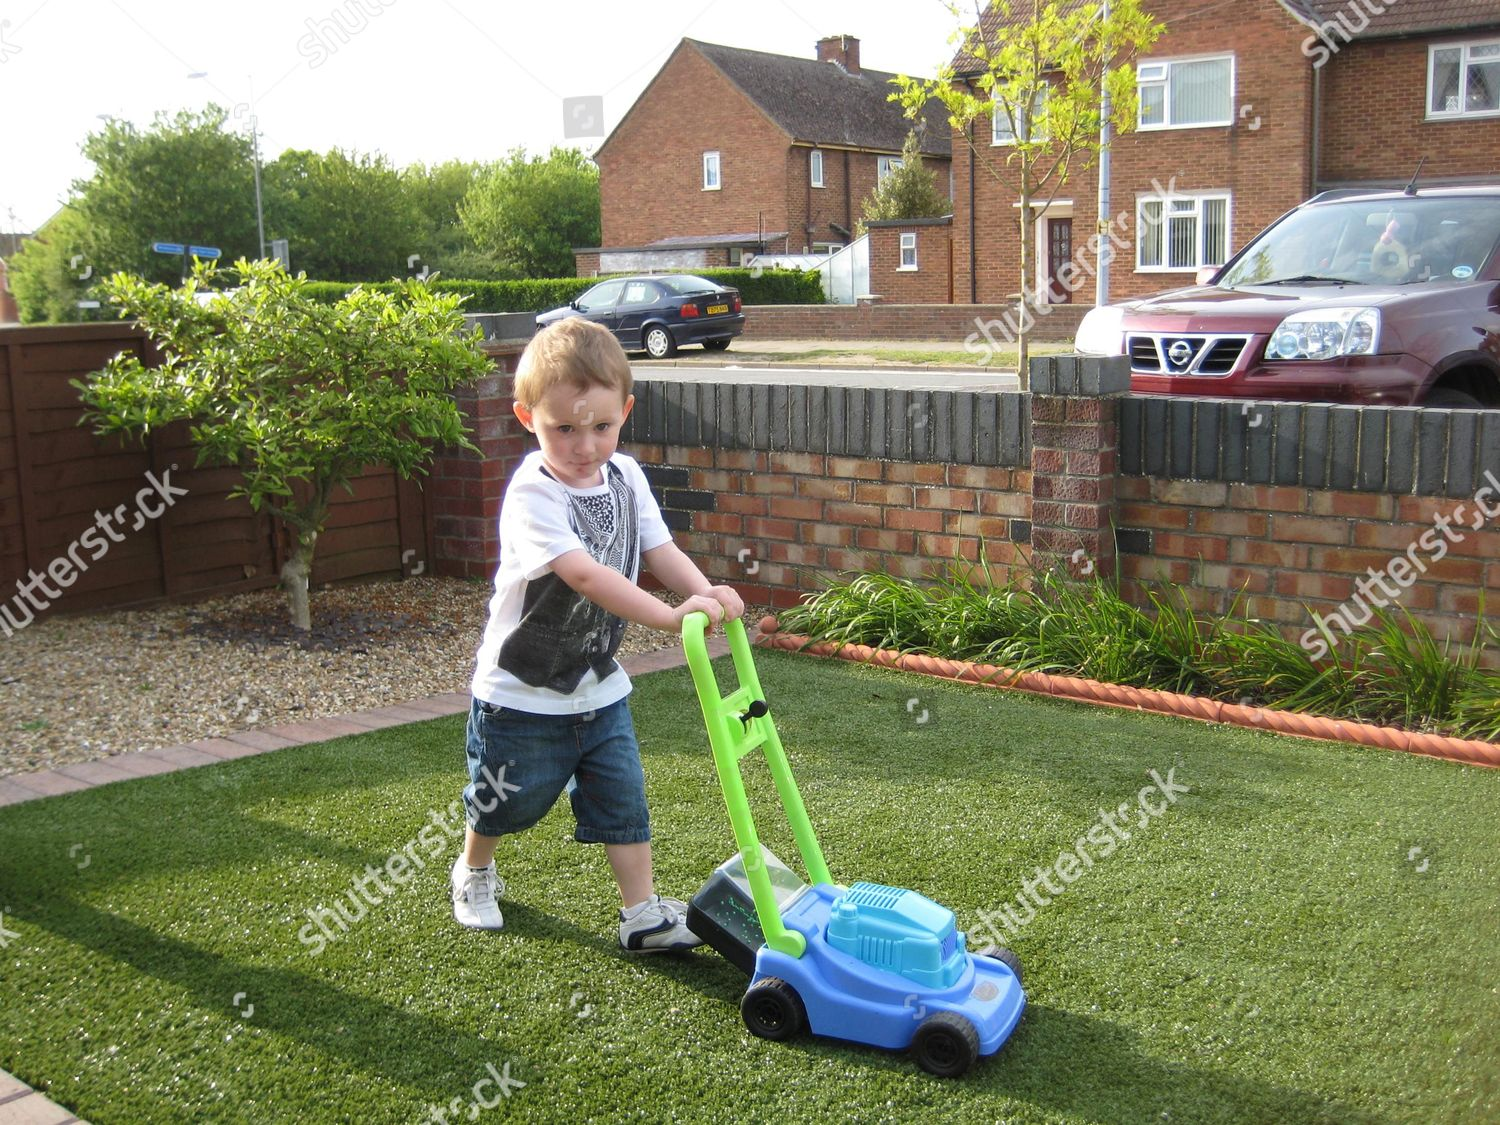 Astro Turf Garden >> Steve Woolnoughs Grandson Mowing Astro Turf Before Editorial